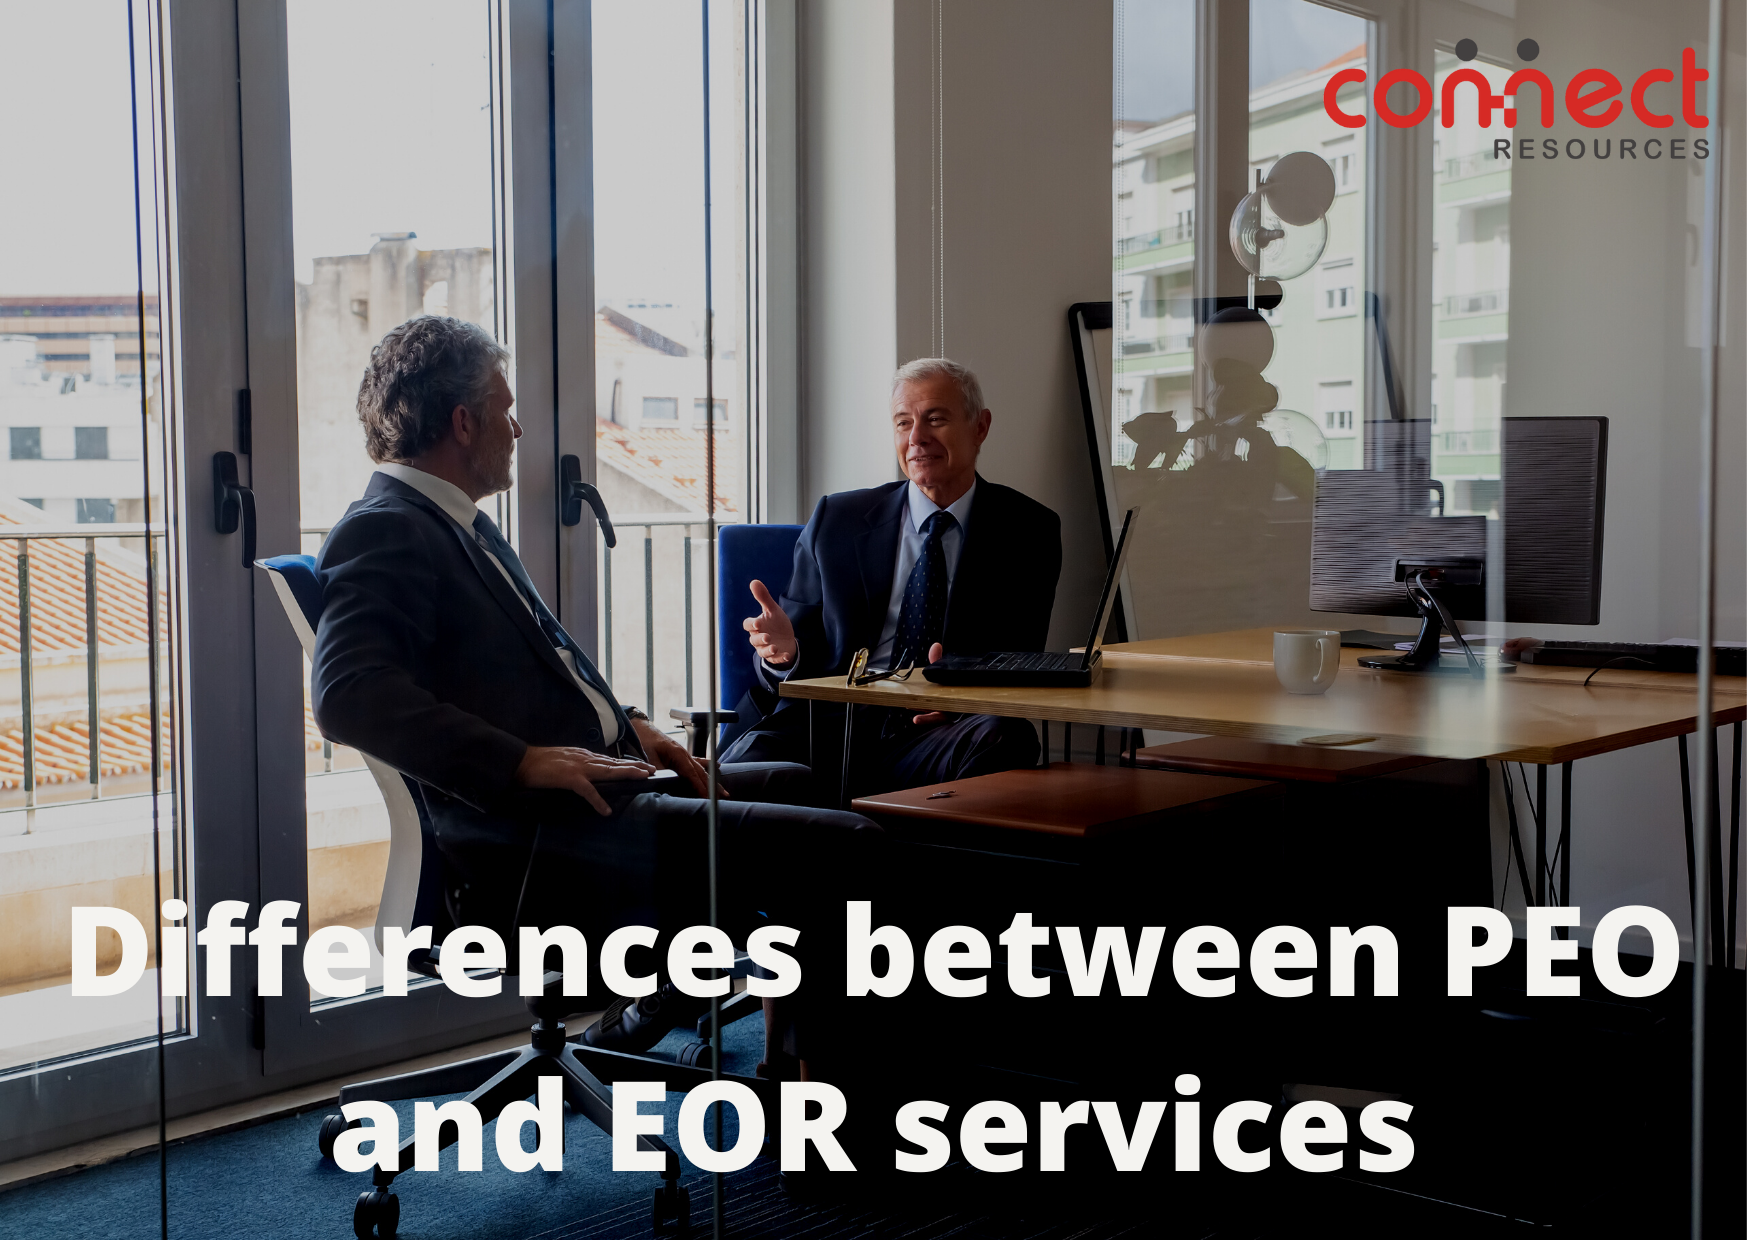 Differences between PEO and EOR services